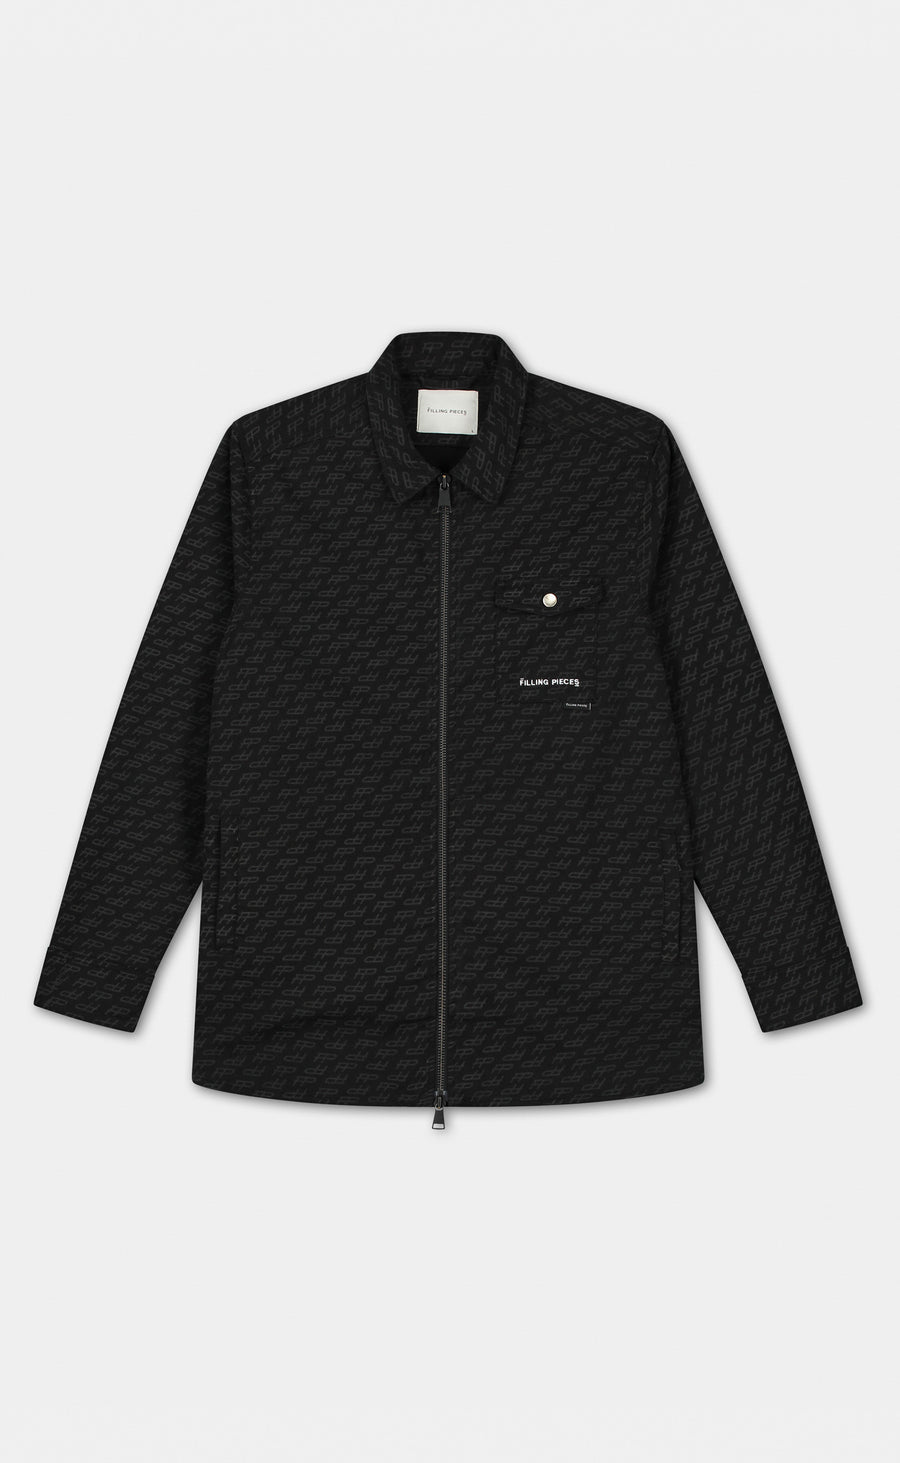 Denim Jacket FP Monogram Black - men